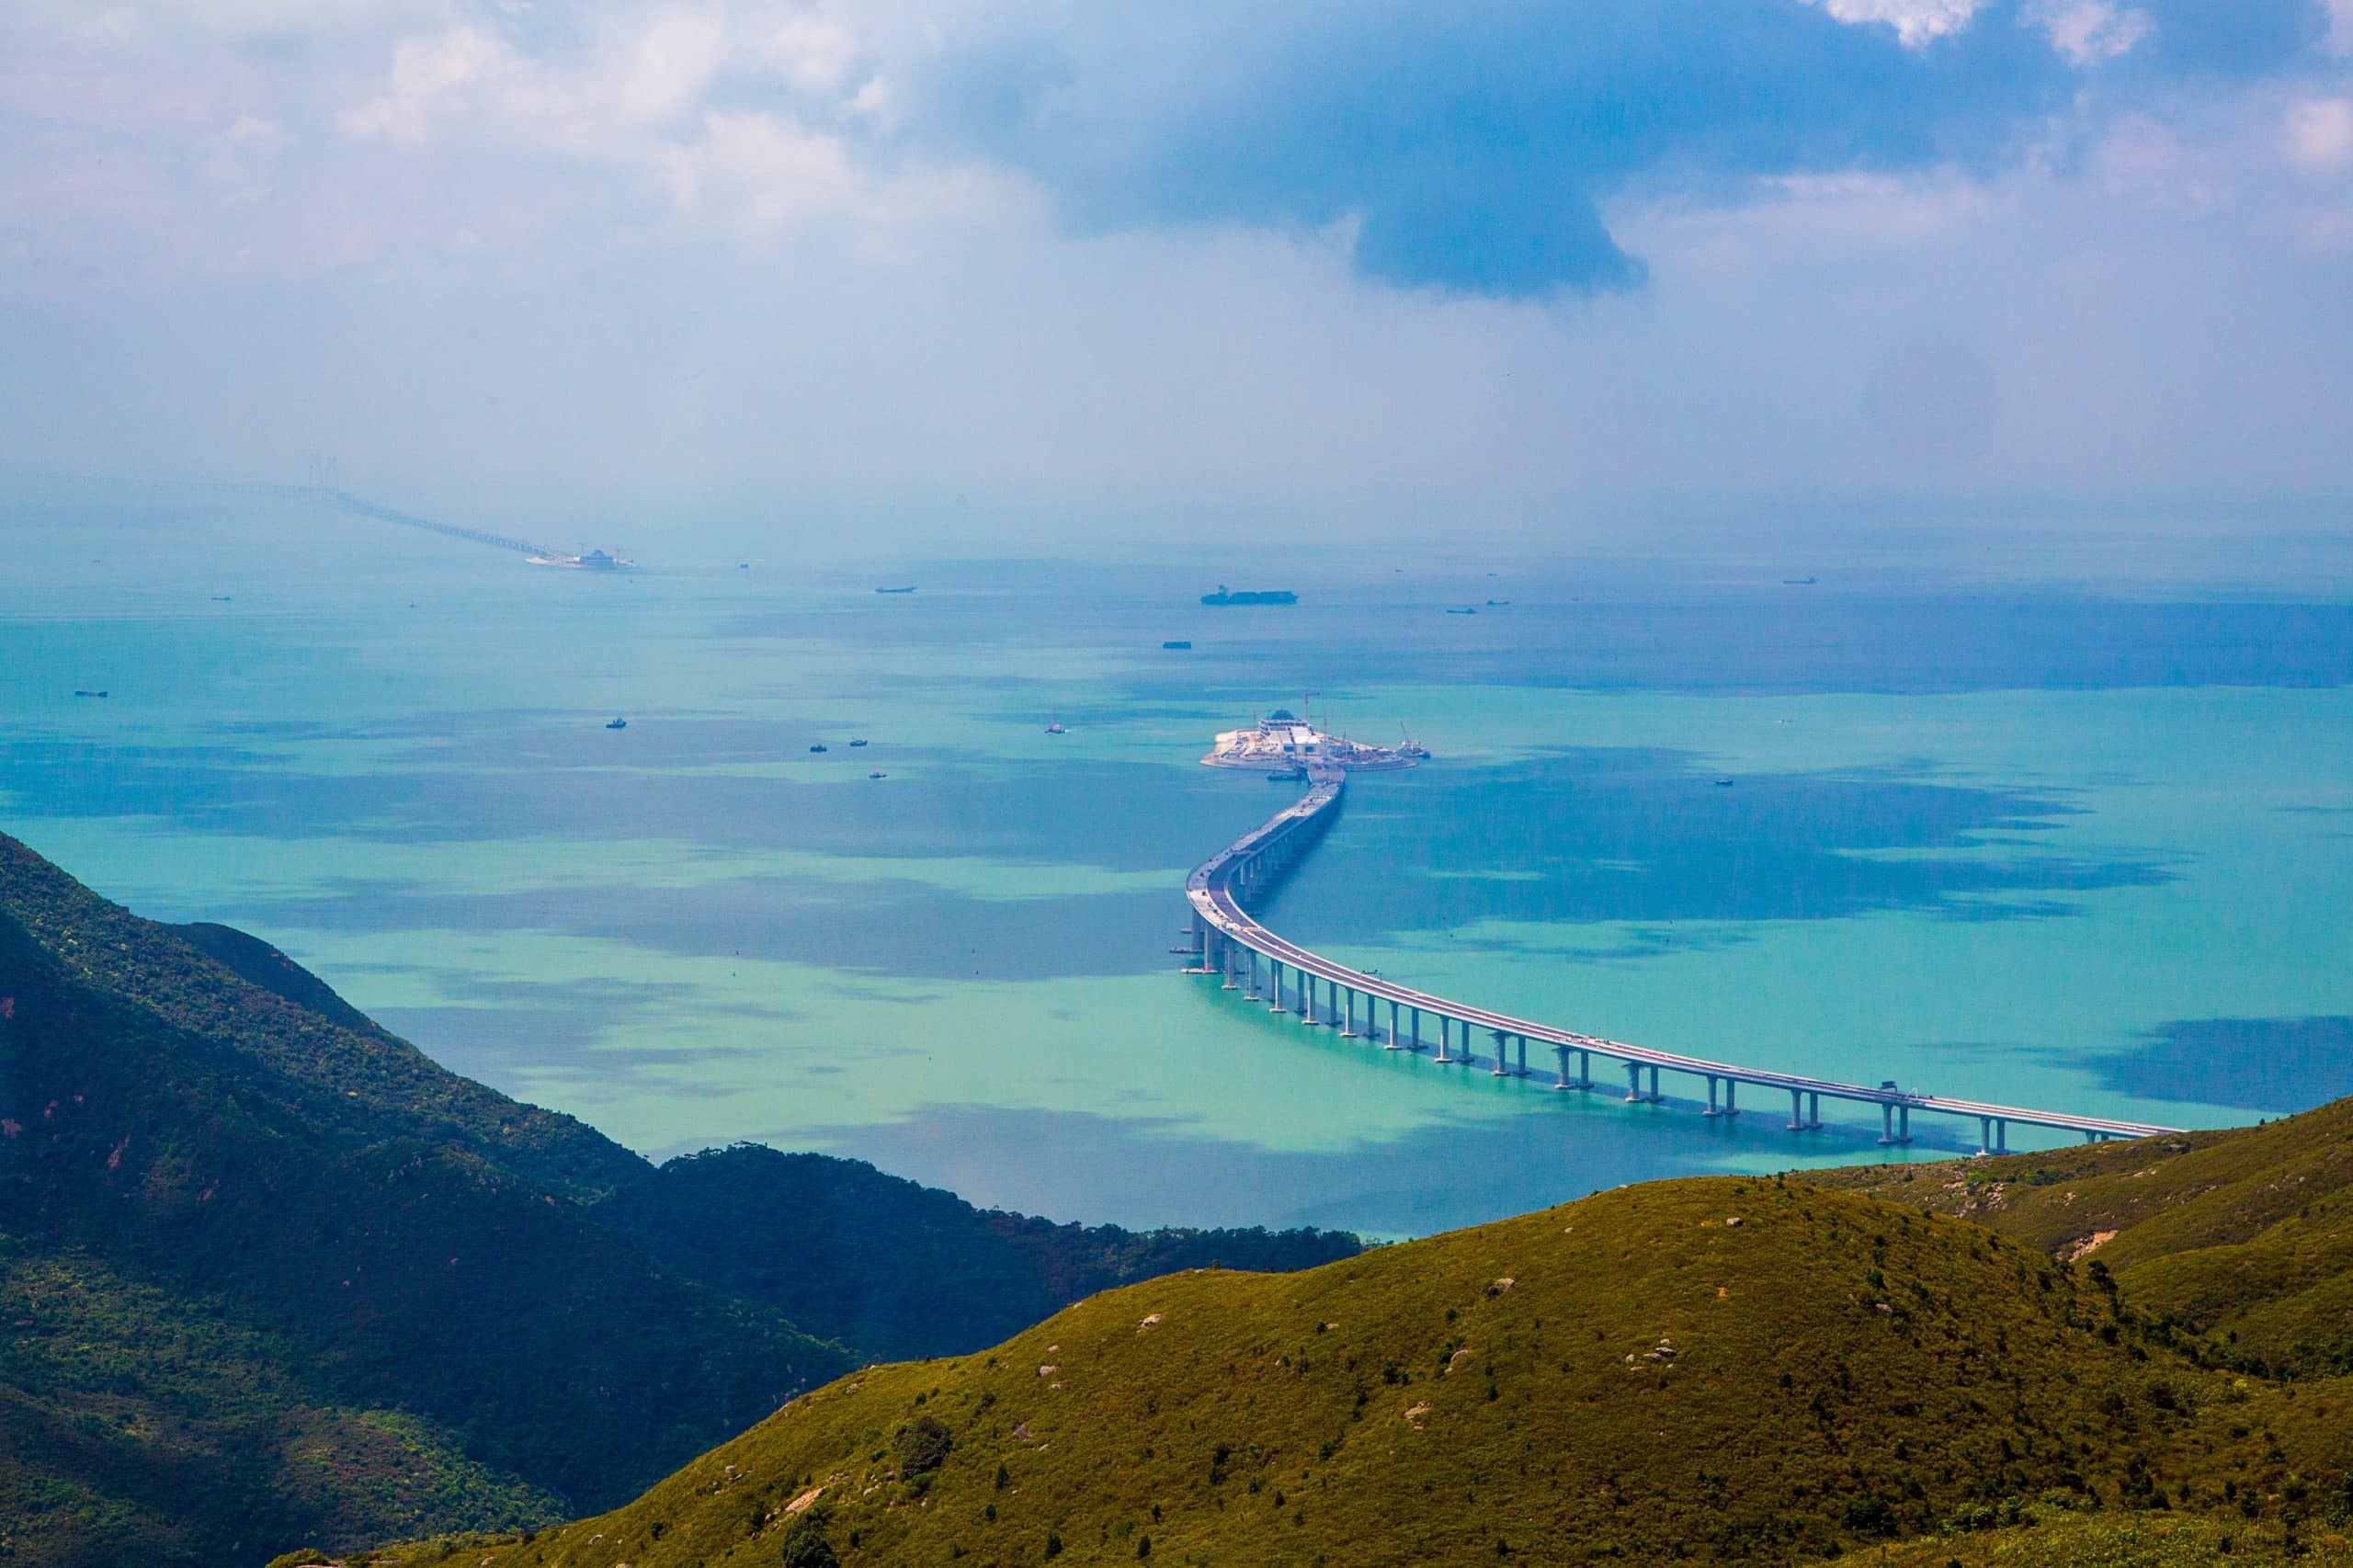 Aerial view of the Lantau Island in Hong Kong with nature, new bridge and the ocean